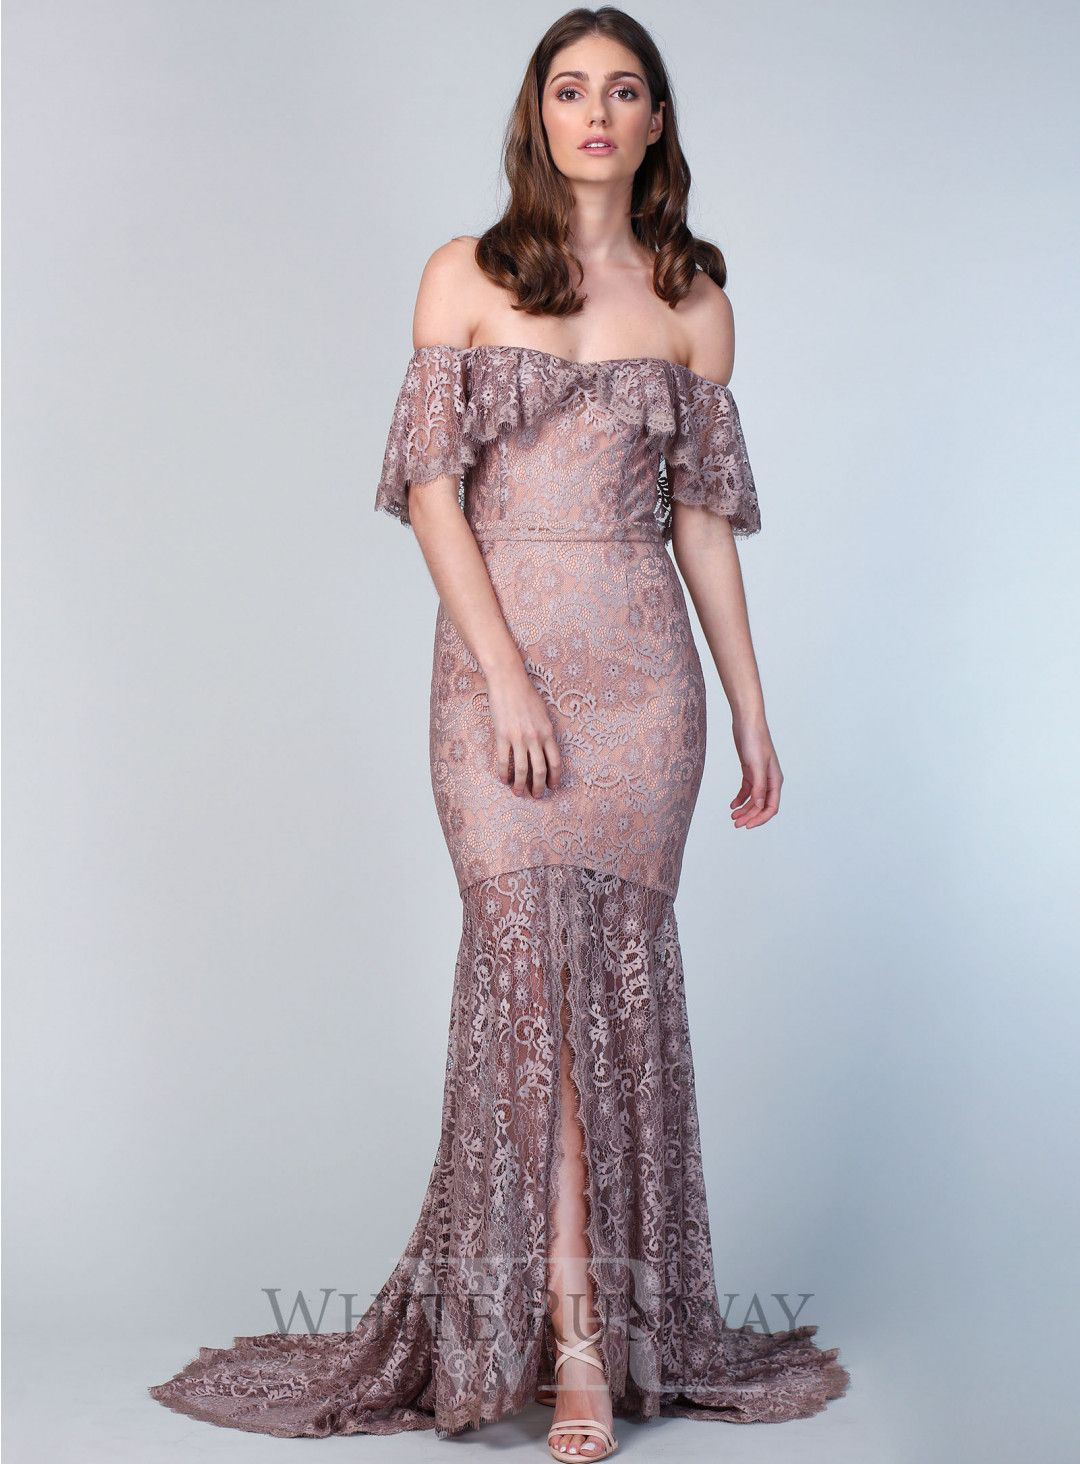 e3c21c6977 ... new product 7711e a874c A stunning full length dress by Sofia Cali. An  off shoulder  info for 2e15c acea6 Shooting Stars Ball Gown.